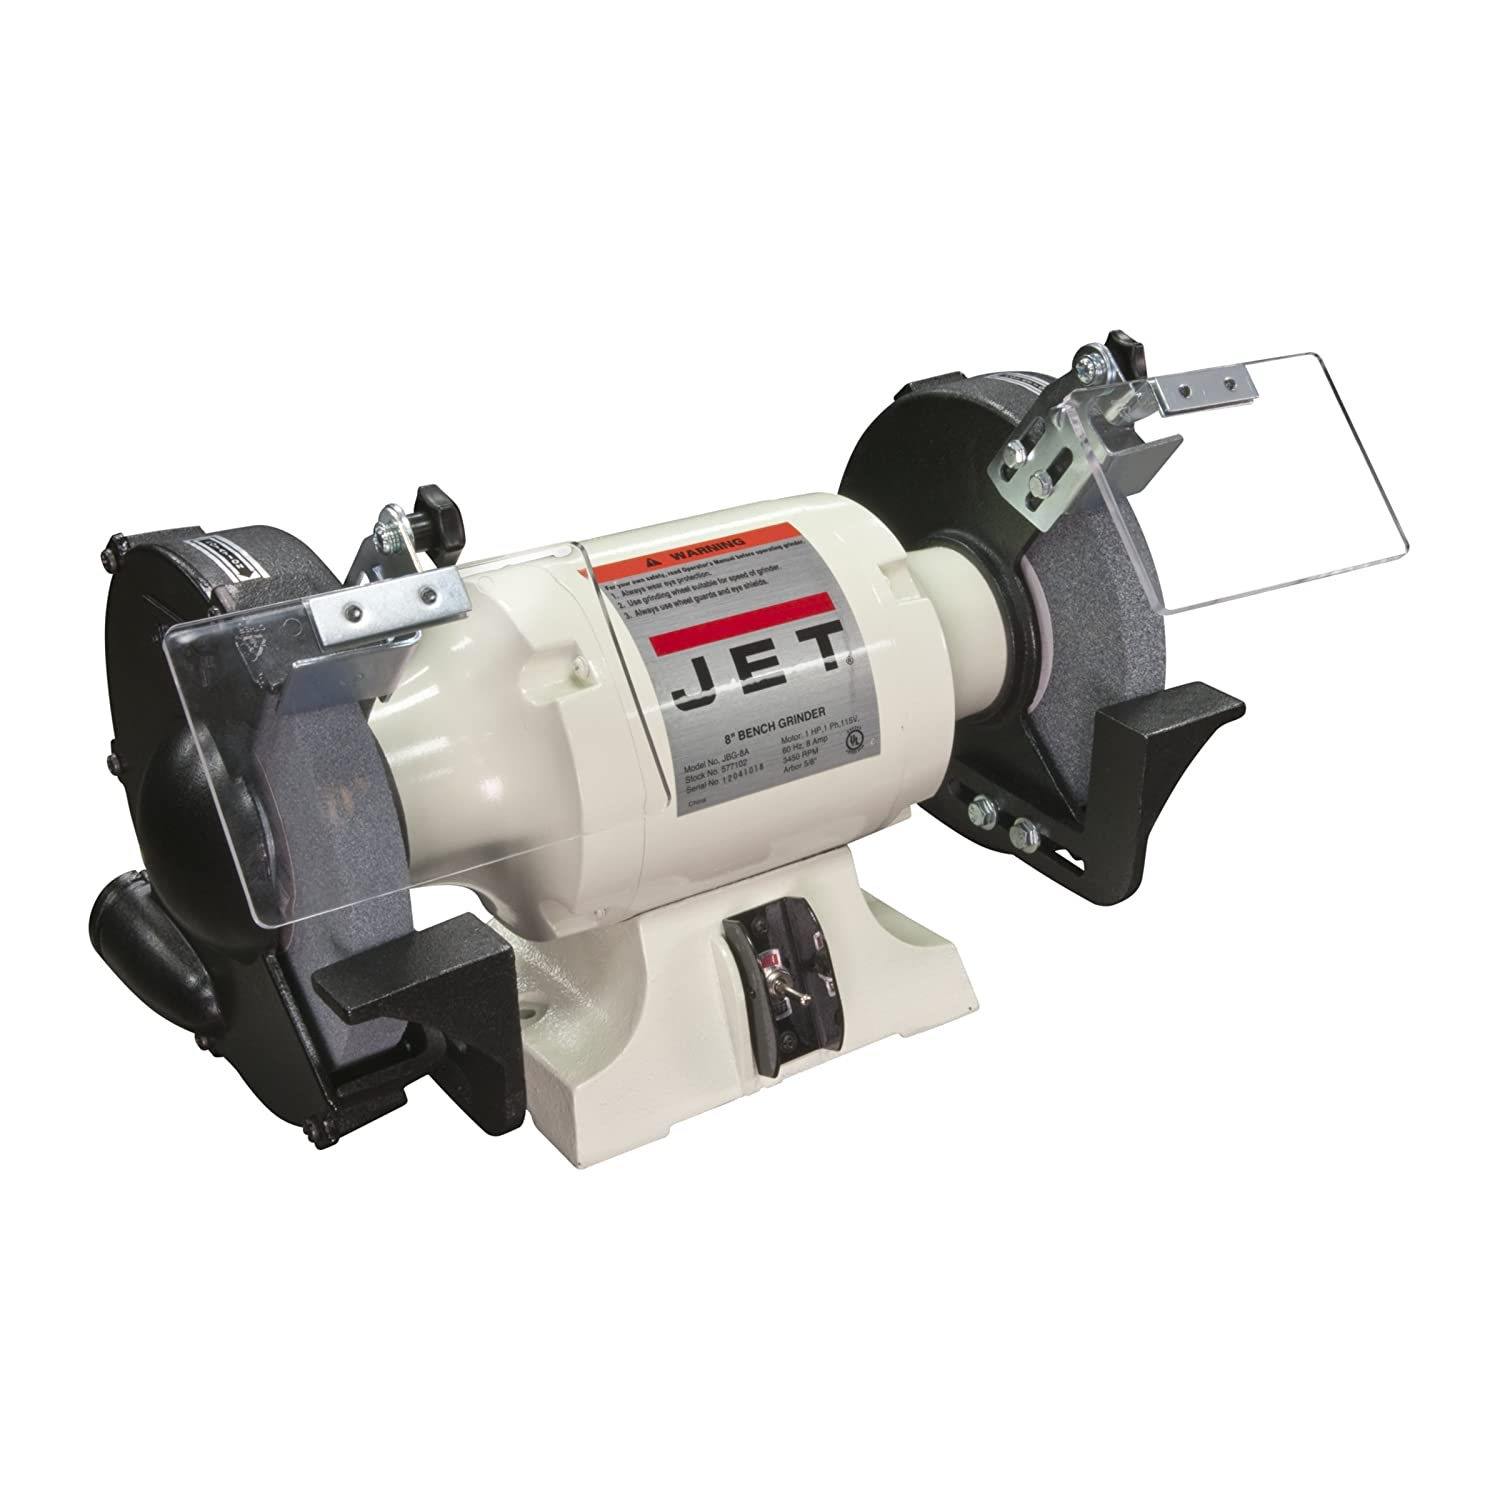 global s bench reciprocating inflow porter res content model technicalissues volt p cable cordless grinder saw inflowcomponent